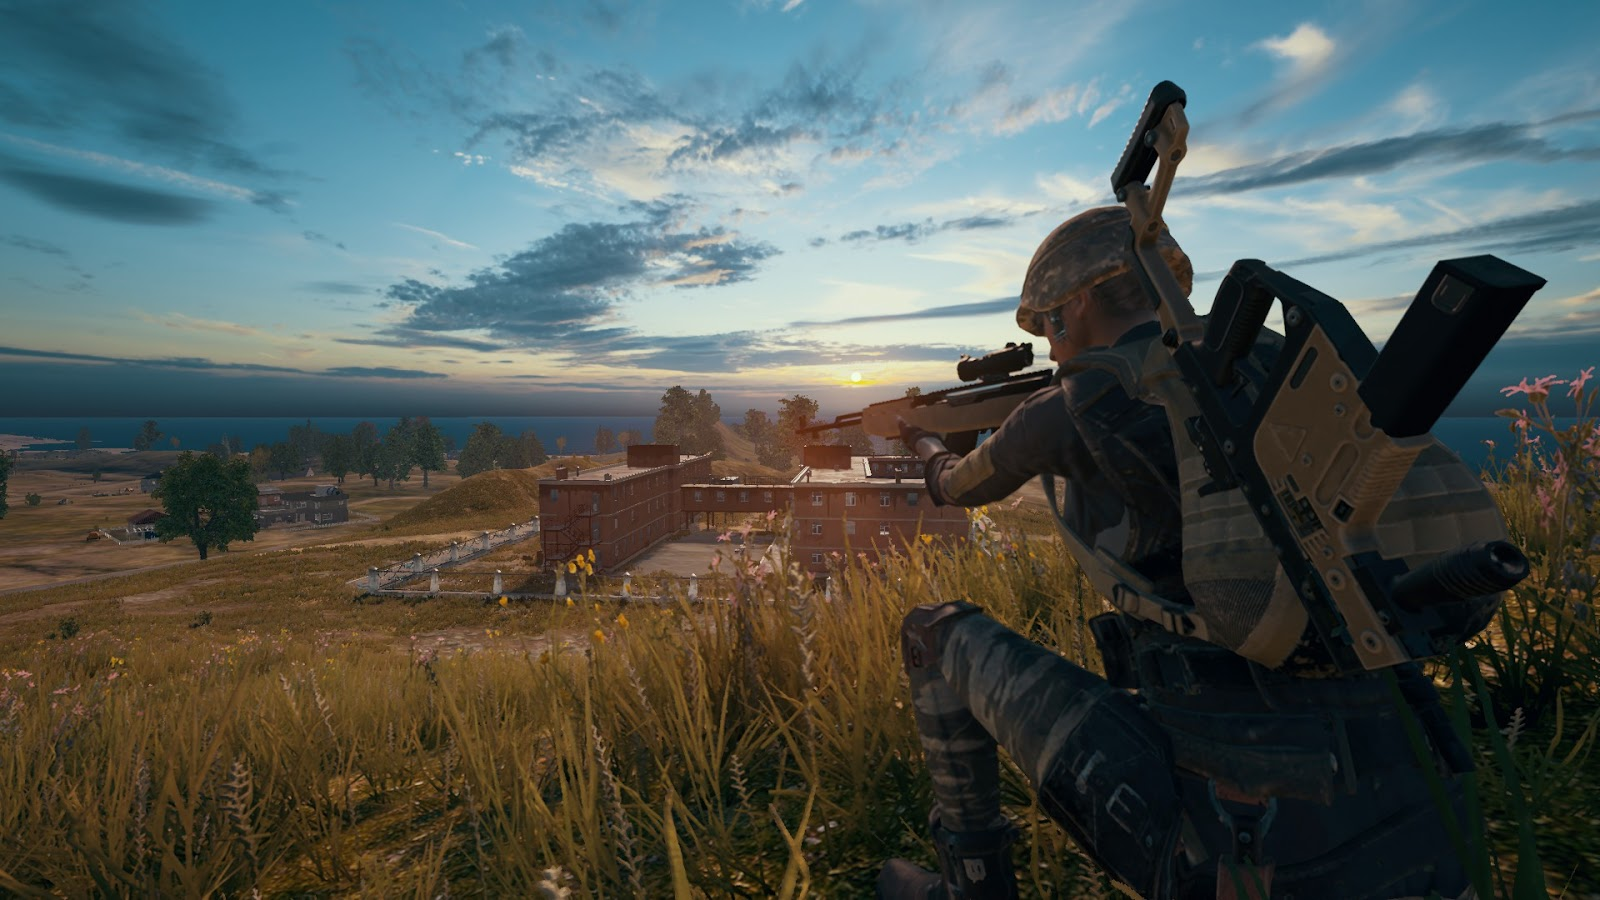 Pubg Full Hd Wallpaper Download For Pc: PUBG 4K ULTRA HD WALLPAPERS FOR PC AND MOBILE